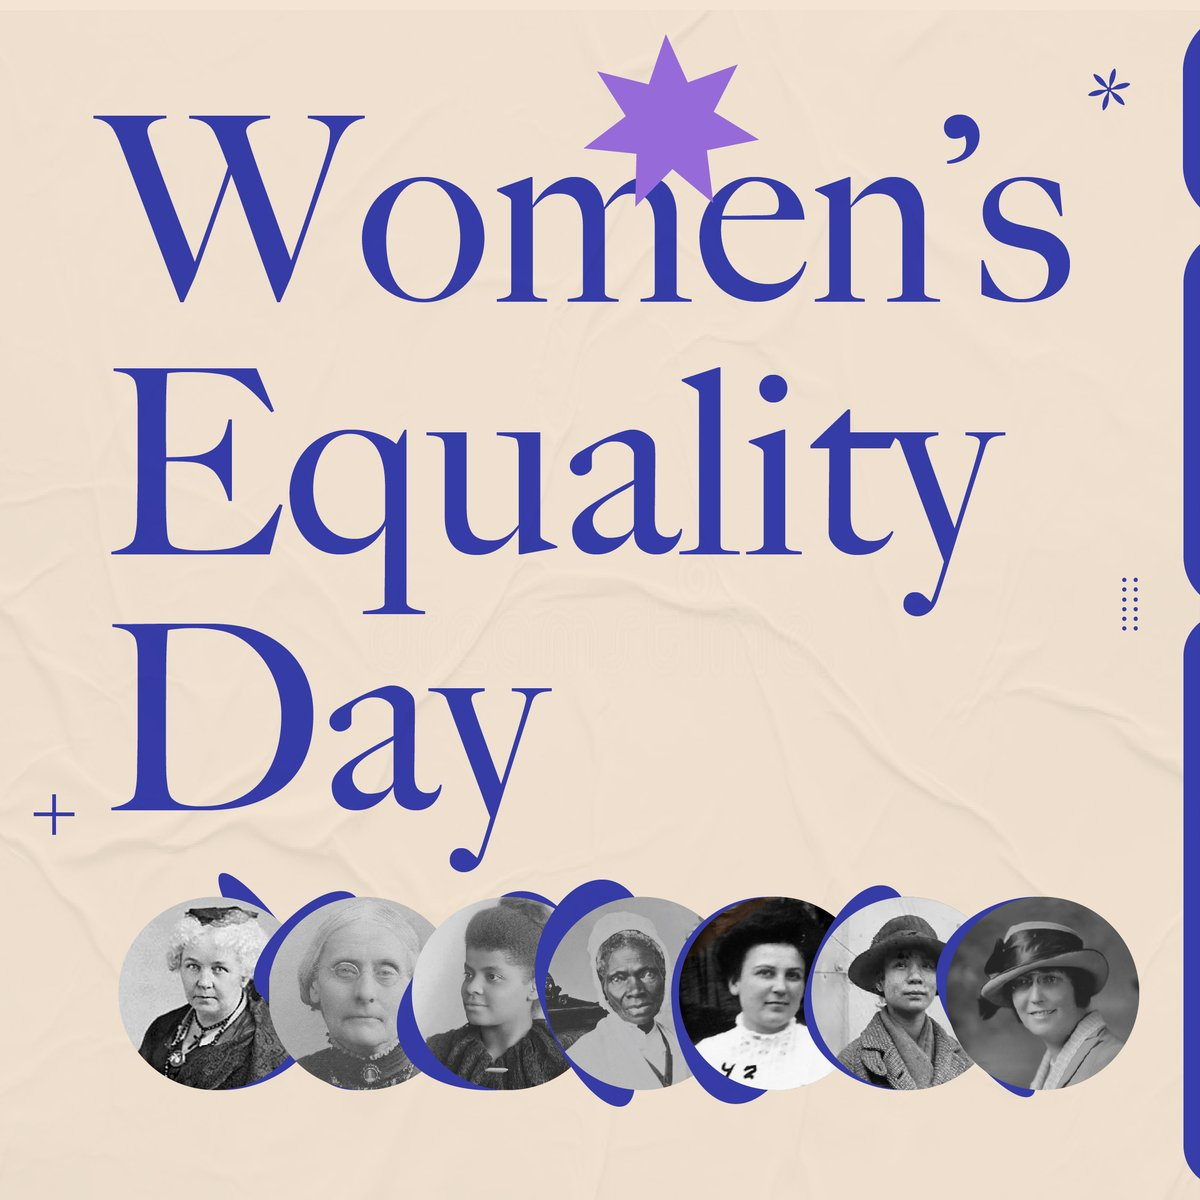 Meet the #WomensEqualityDay trailblazers who inspire us.  Today, as the inequalities they fought so diligently for still persist, we carry on with their legacy and progress through the power of our votes.  https://t.co/UaNmD22kx6 #NormalizeEquality https://t.co/2tq894nvMX